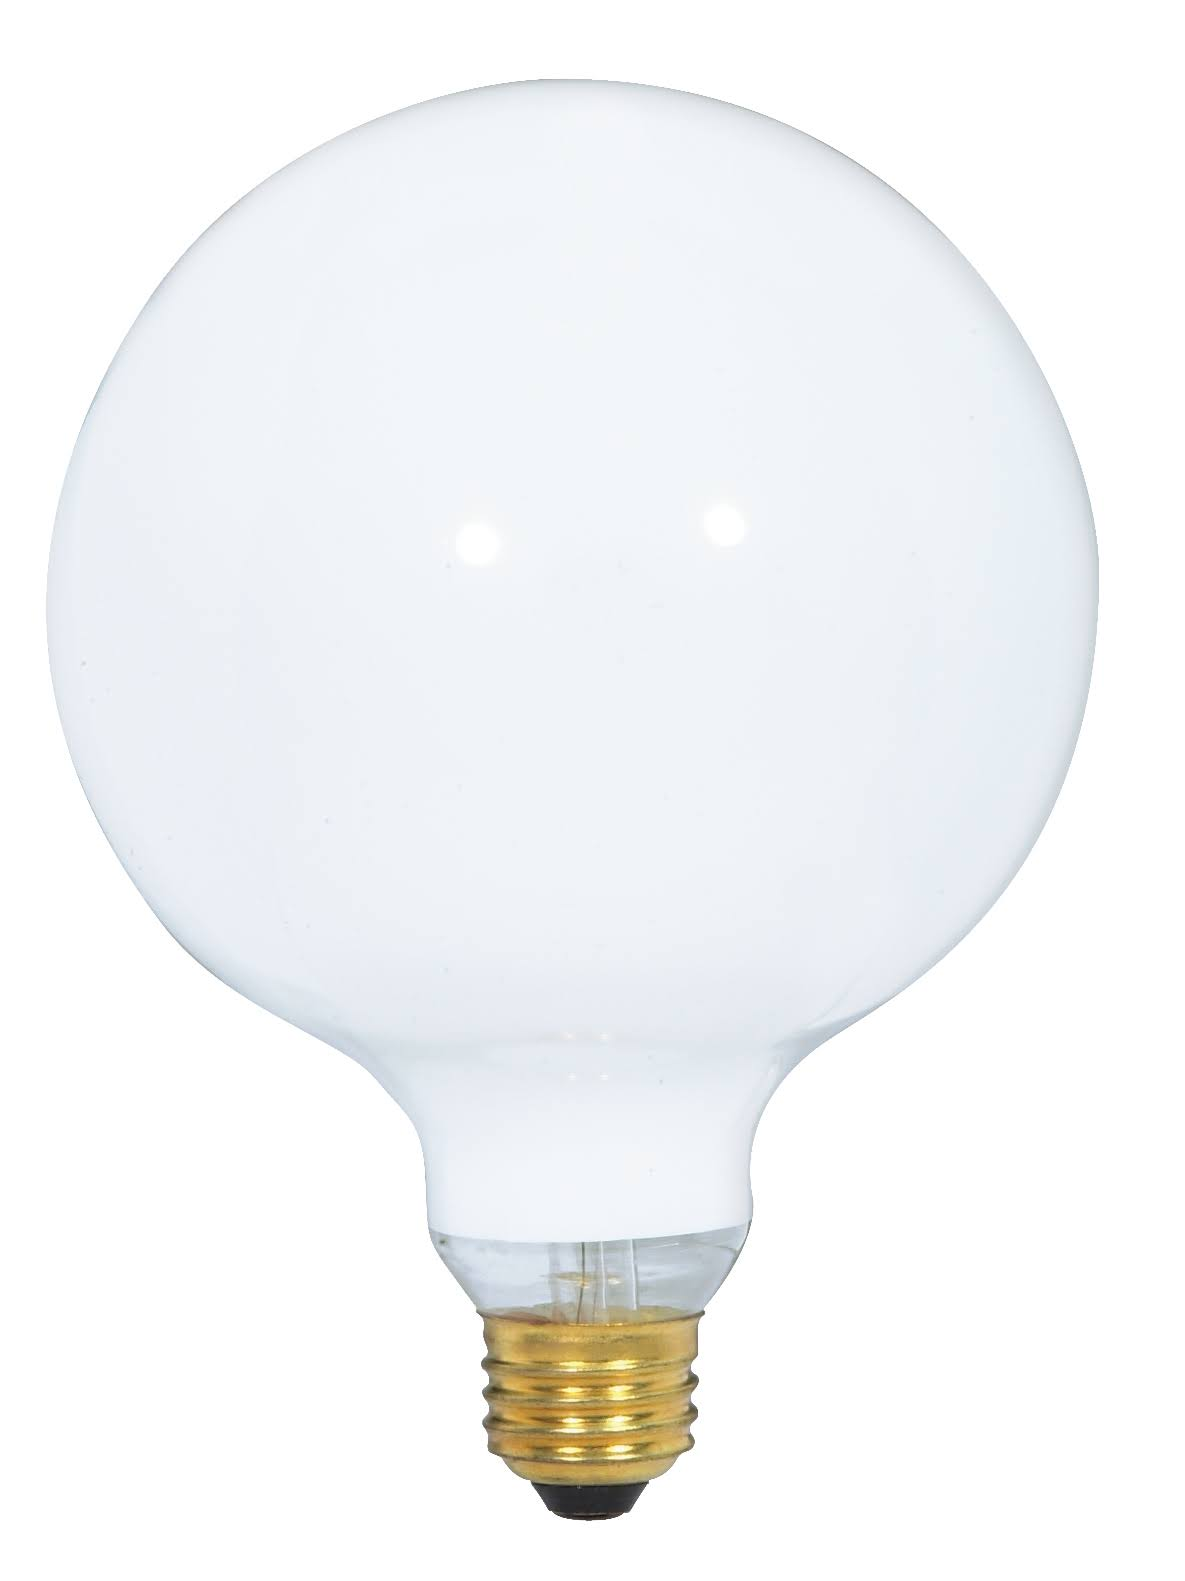 Satco Medium Base G40 Light Bulb - Gloss White, 120V, 40W